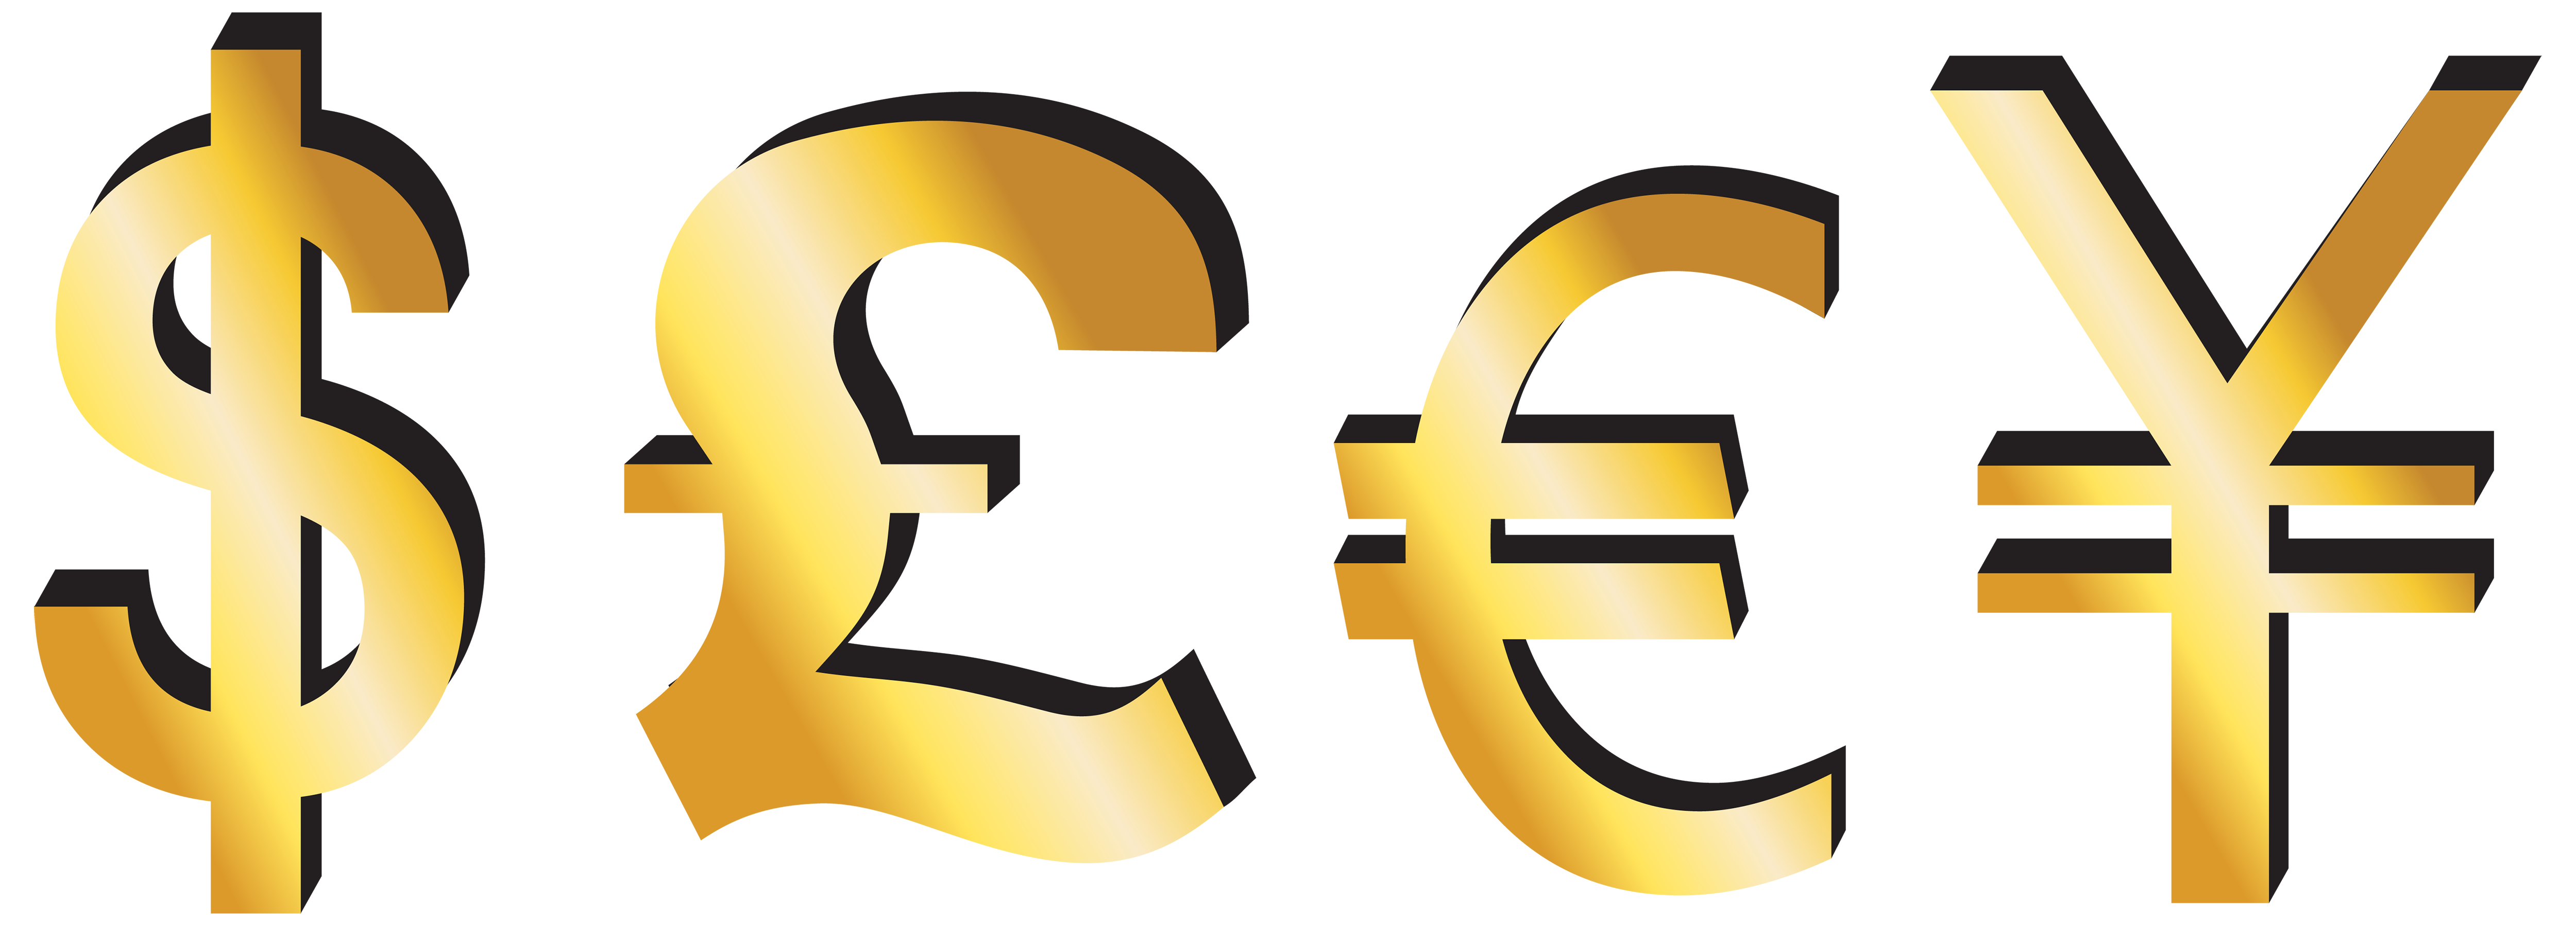 5000x1798 Dollar Pound Euro Yen Signs Png Clipart